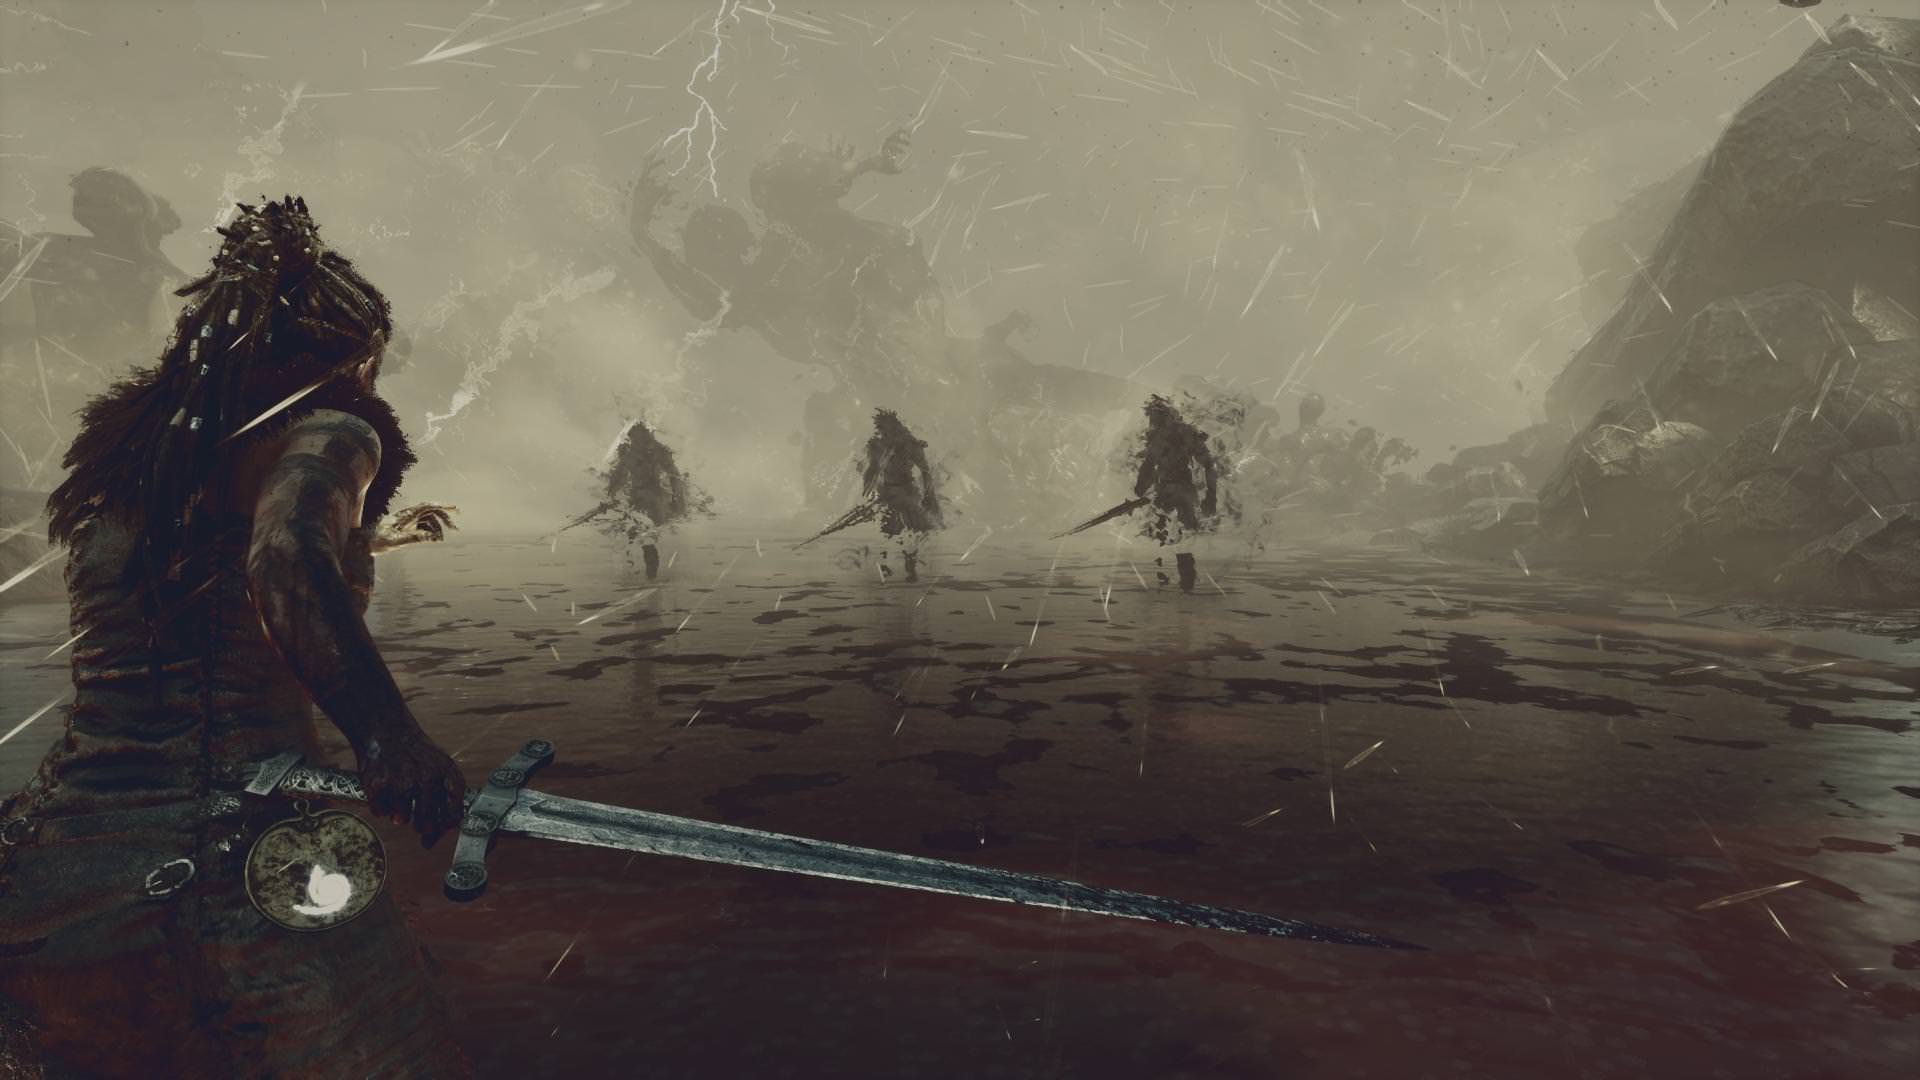 Made using PhotoMode in Hellblade Senua's Sacrifice